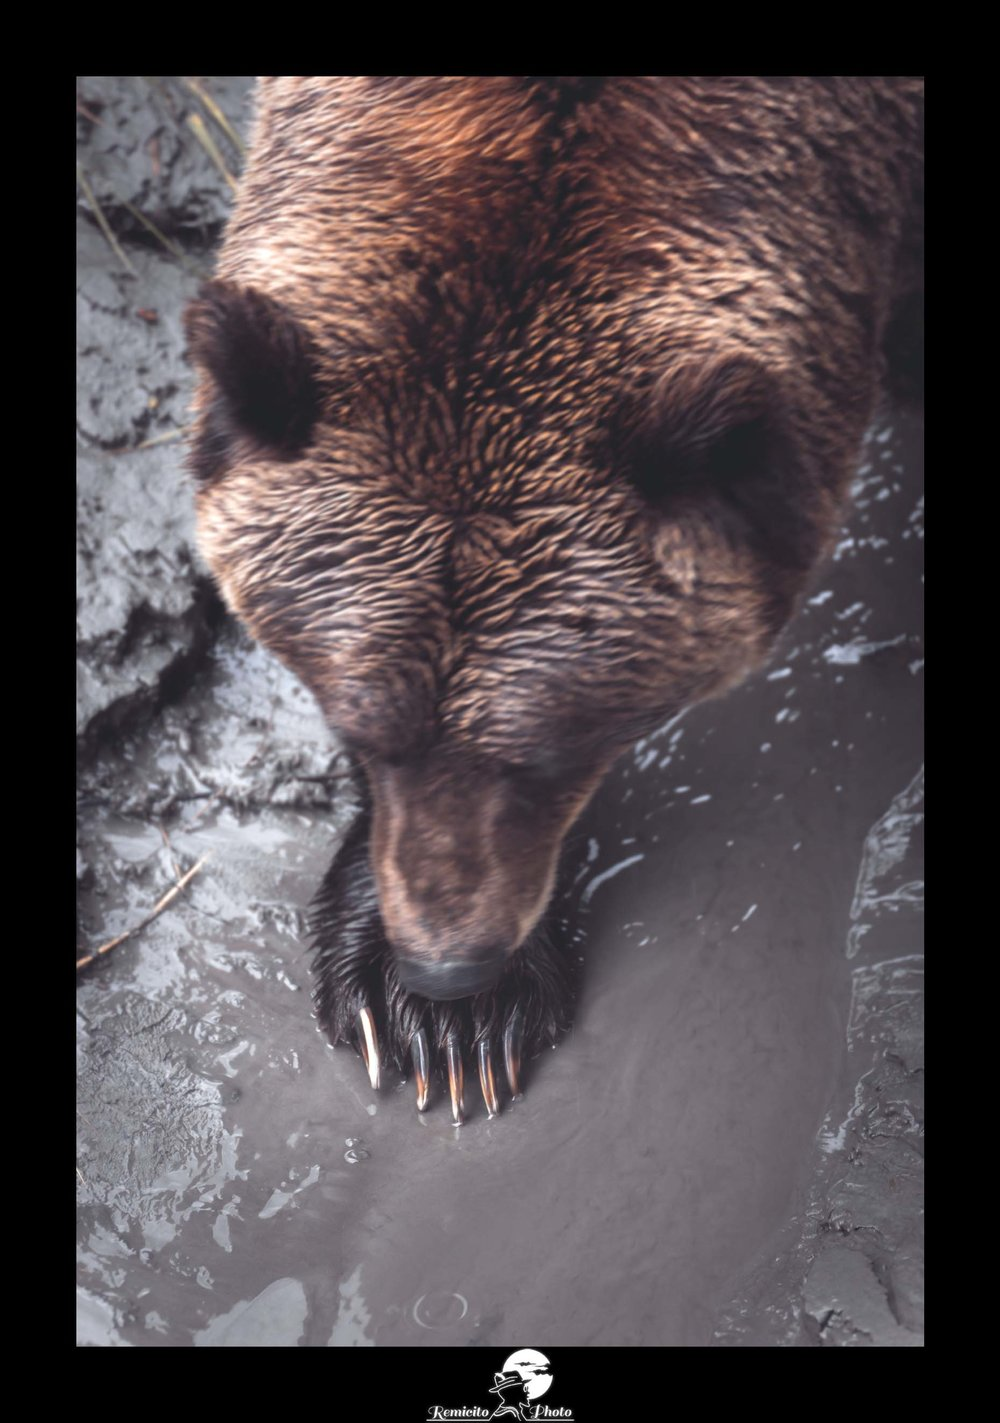 remicito photo, remicito, image du jour, photo du jour, remicito photographe français, belle photo ours, grizzly alaska photo, griffes ours photo, bear alaska, belle photo idée cadeau ours